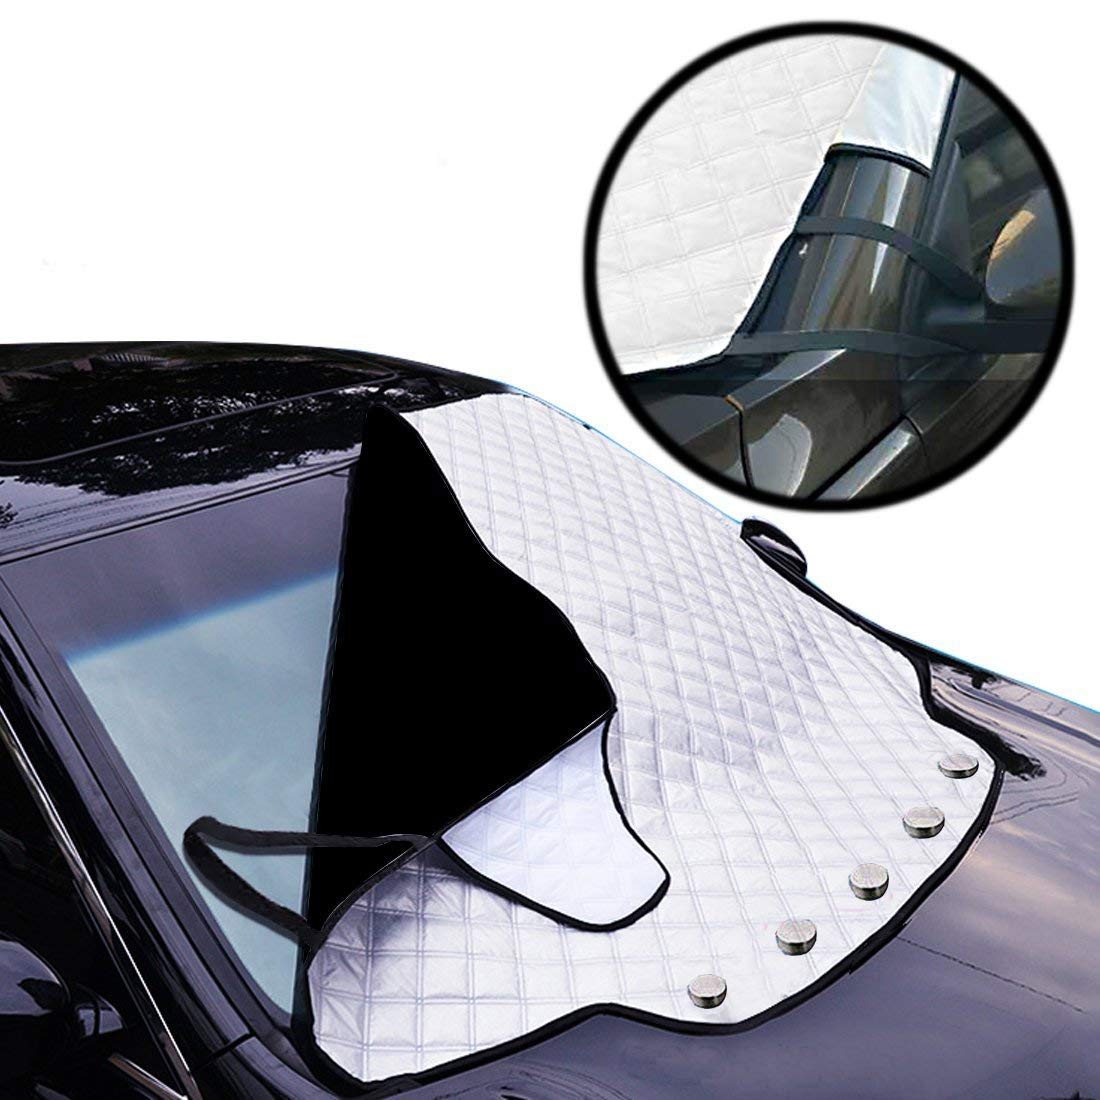 DongRong Car Windscreen Frost Cover - Magnetic Snow Cover Car Windshield Cover, Windshield Sun Protector with Five Magnet Cotton Thicker Windshield Winter Cover Fits for Most Cars